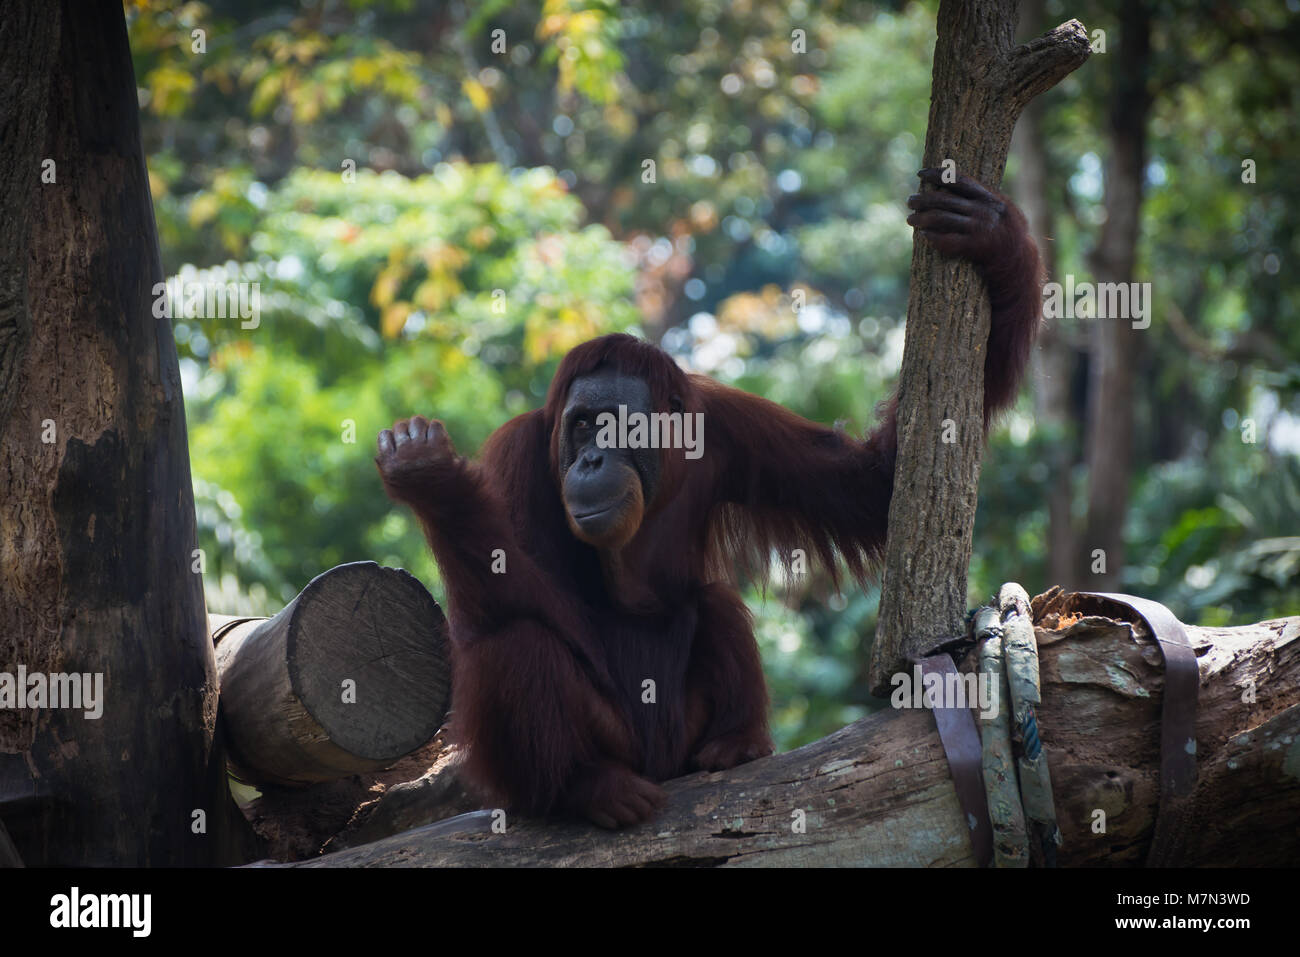 Smiling orangutan sits alone on the tree. Pensive primate looking away. Funny monkey on the nature background - Stock Image